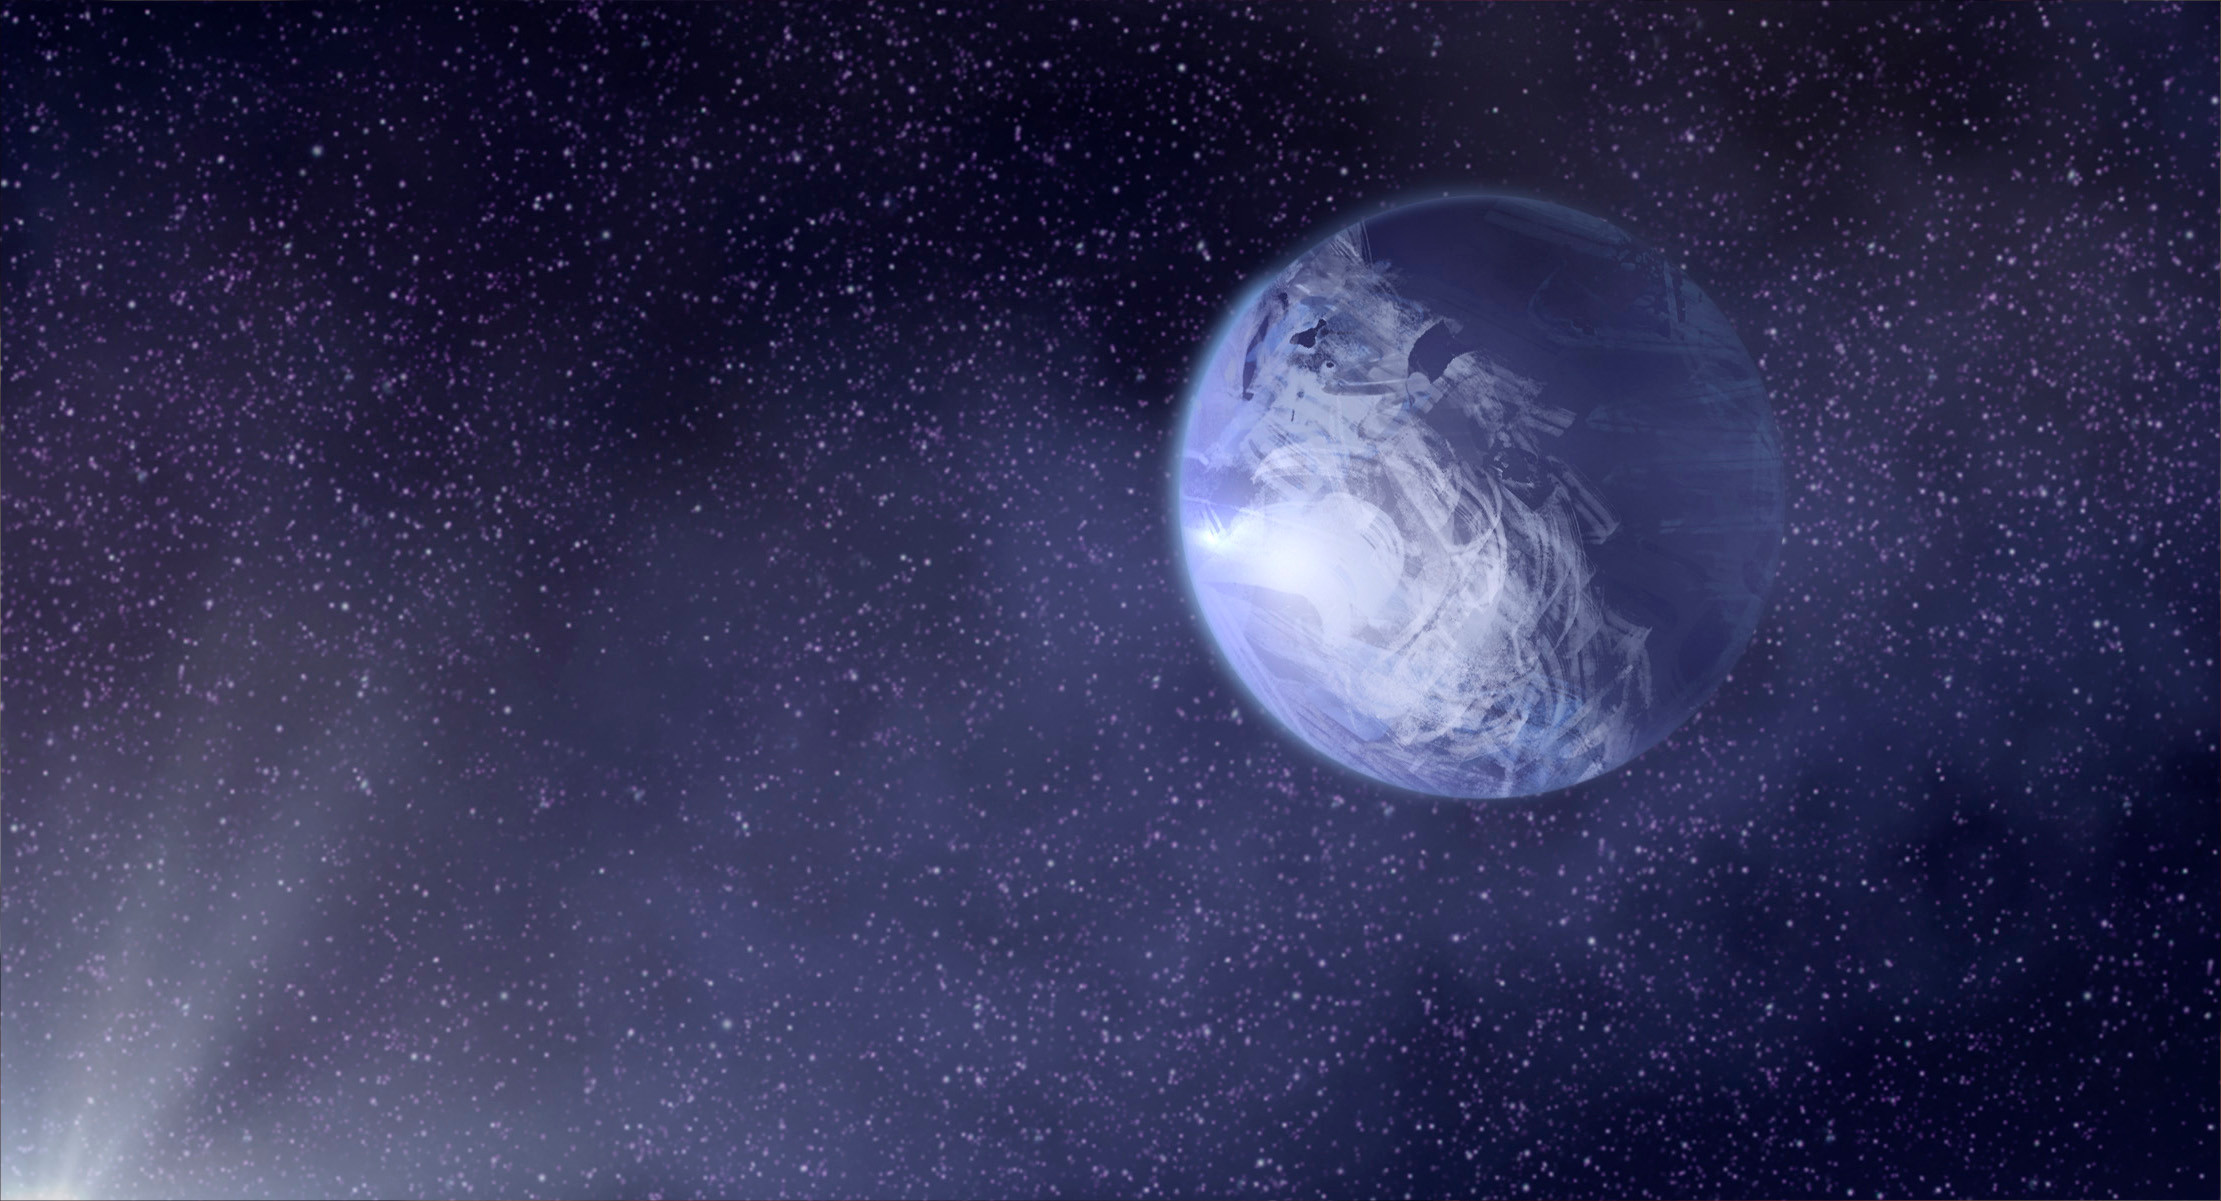 --our destination planet, wreathed in a mysterious mantle of clouds.